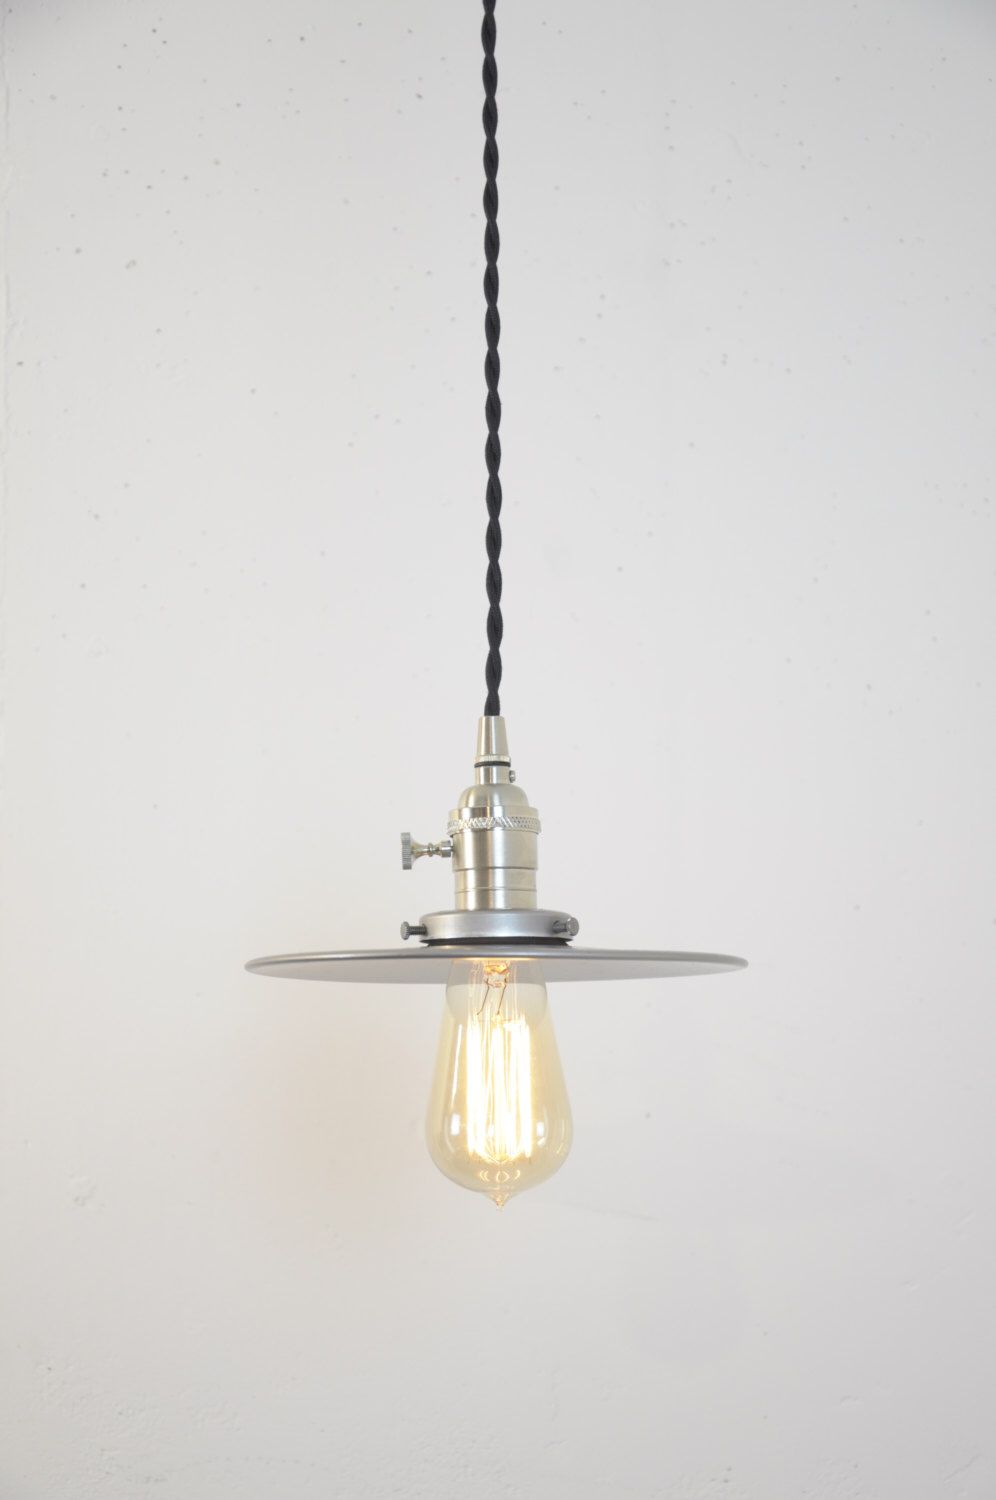 black sushi to pendant best incredible warnaa plug ceiling make com ege regarding about of light hanging concrete in order creative diy lights for ideas